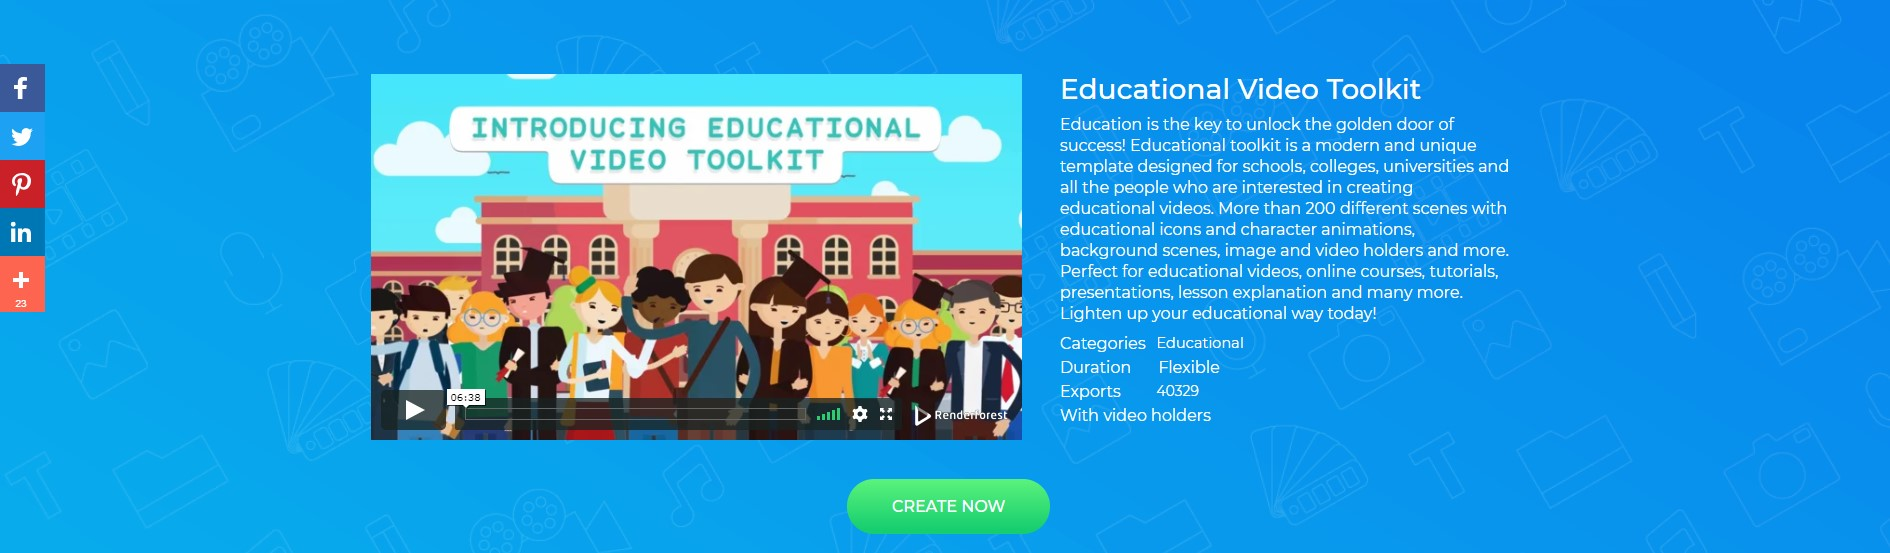 Educational Video Toolkit